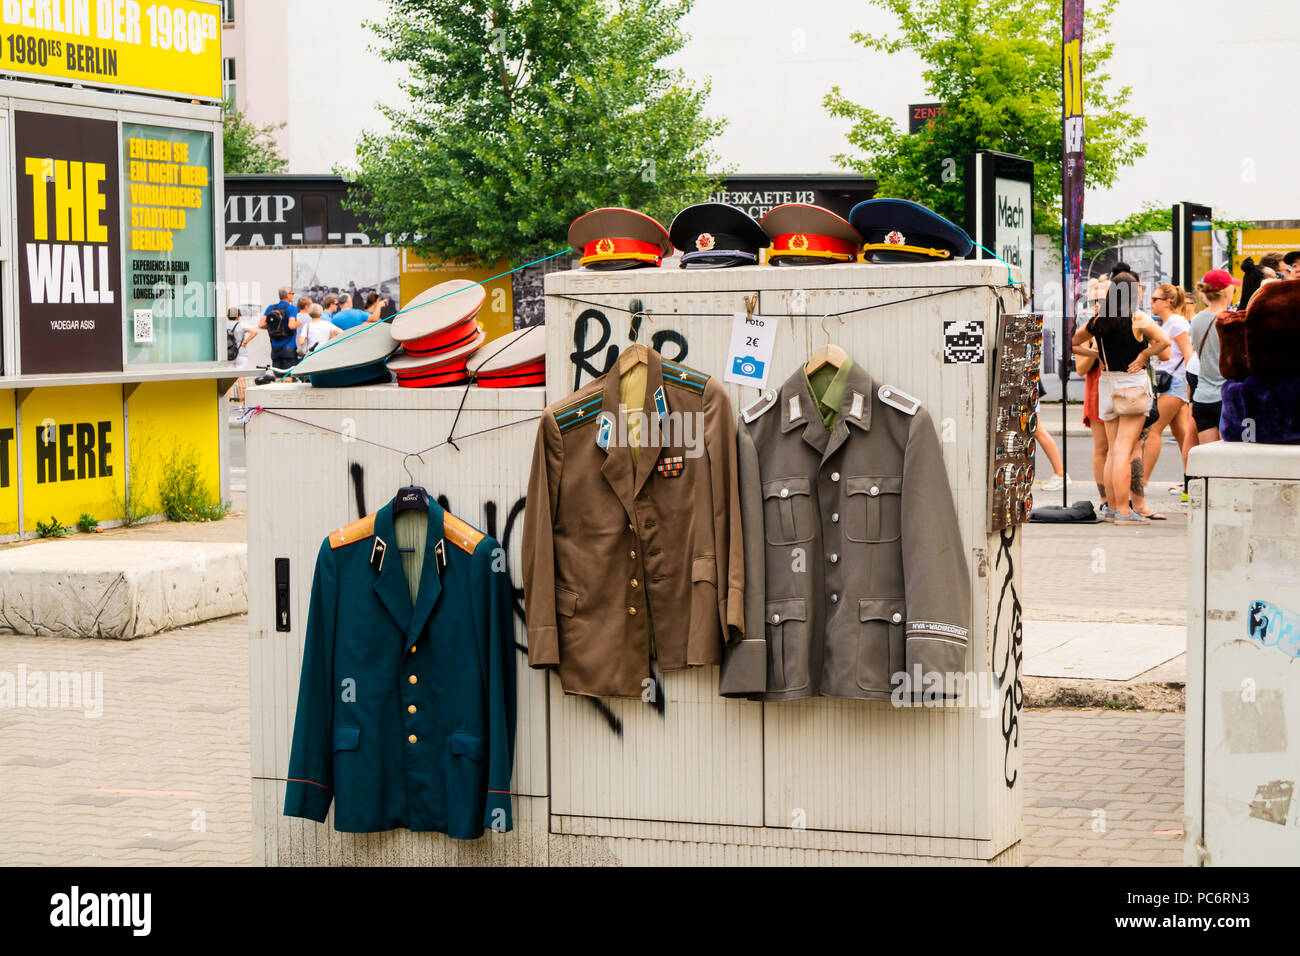 Original military WW2 uniforms for photography hire by the historic Berlin Wall and Checkpoint Charlie. - Stock Image